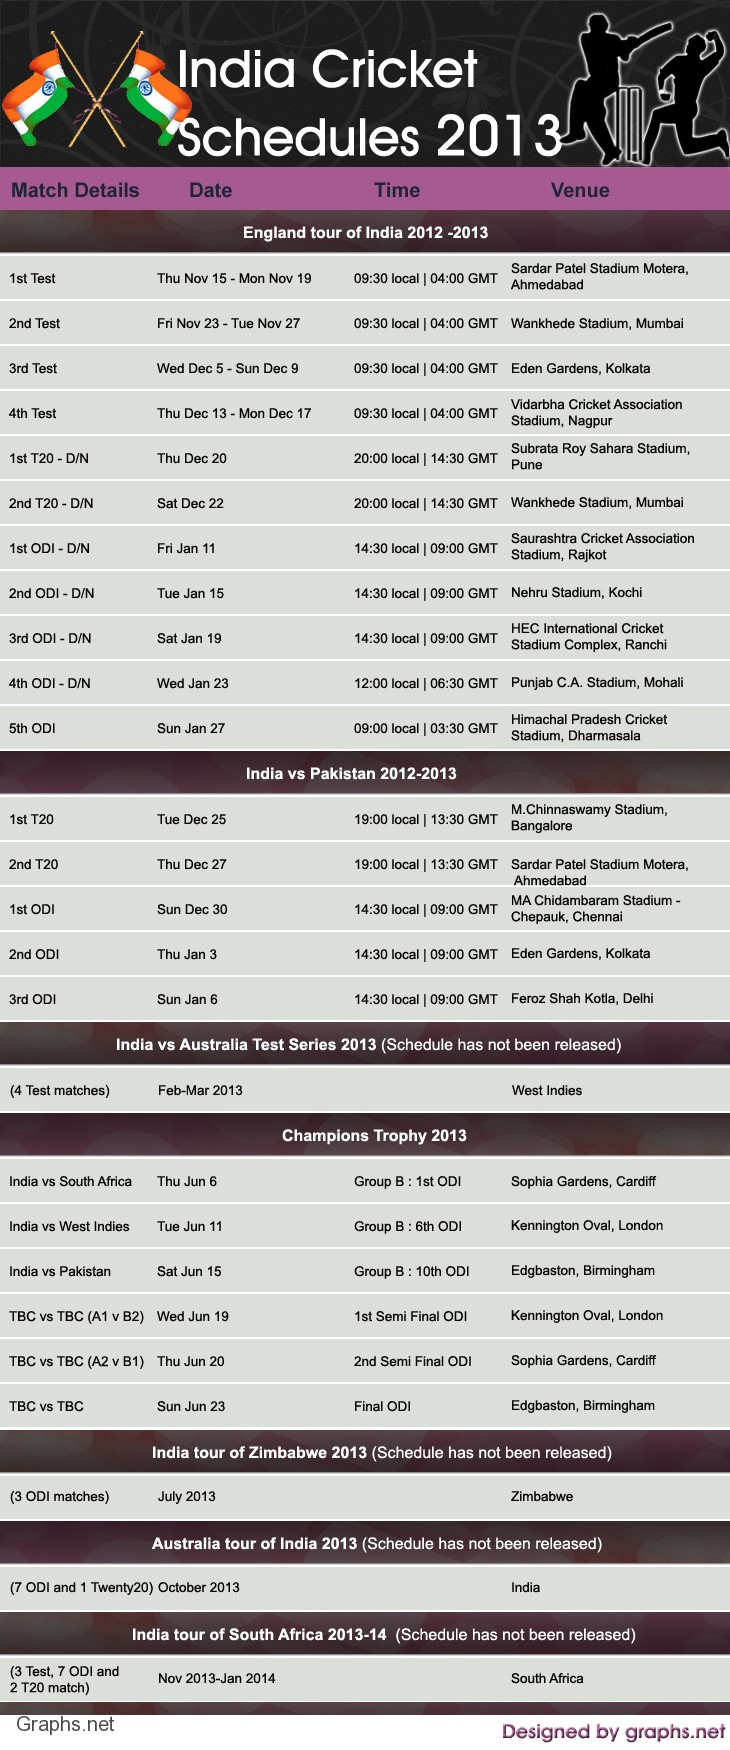 Cricket Schedules Of India For The Year 2013 Infographics